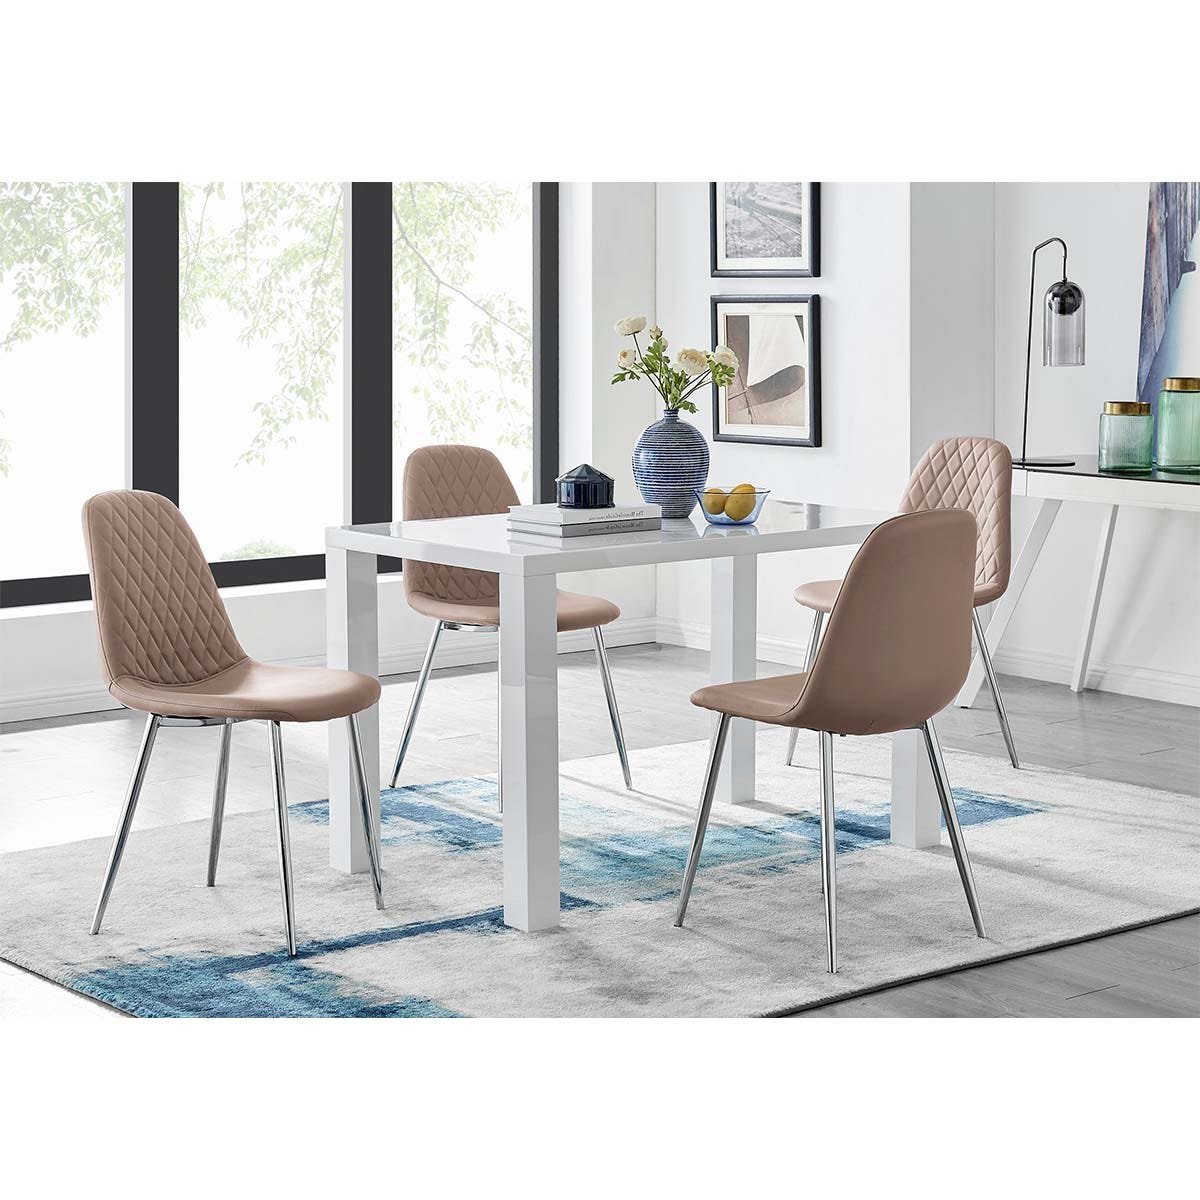 Furniture Box Pivero White High Gloss Dining Table And 4 Cappuccino Grey Corona Silver Chairs Set